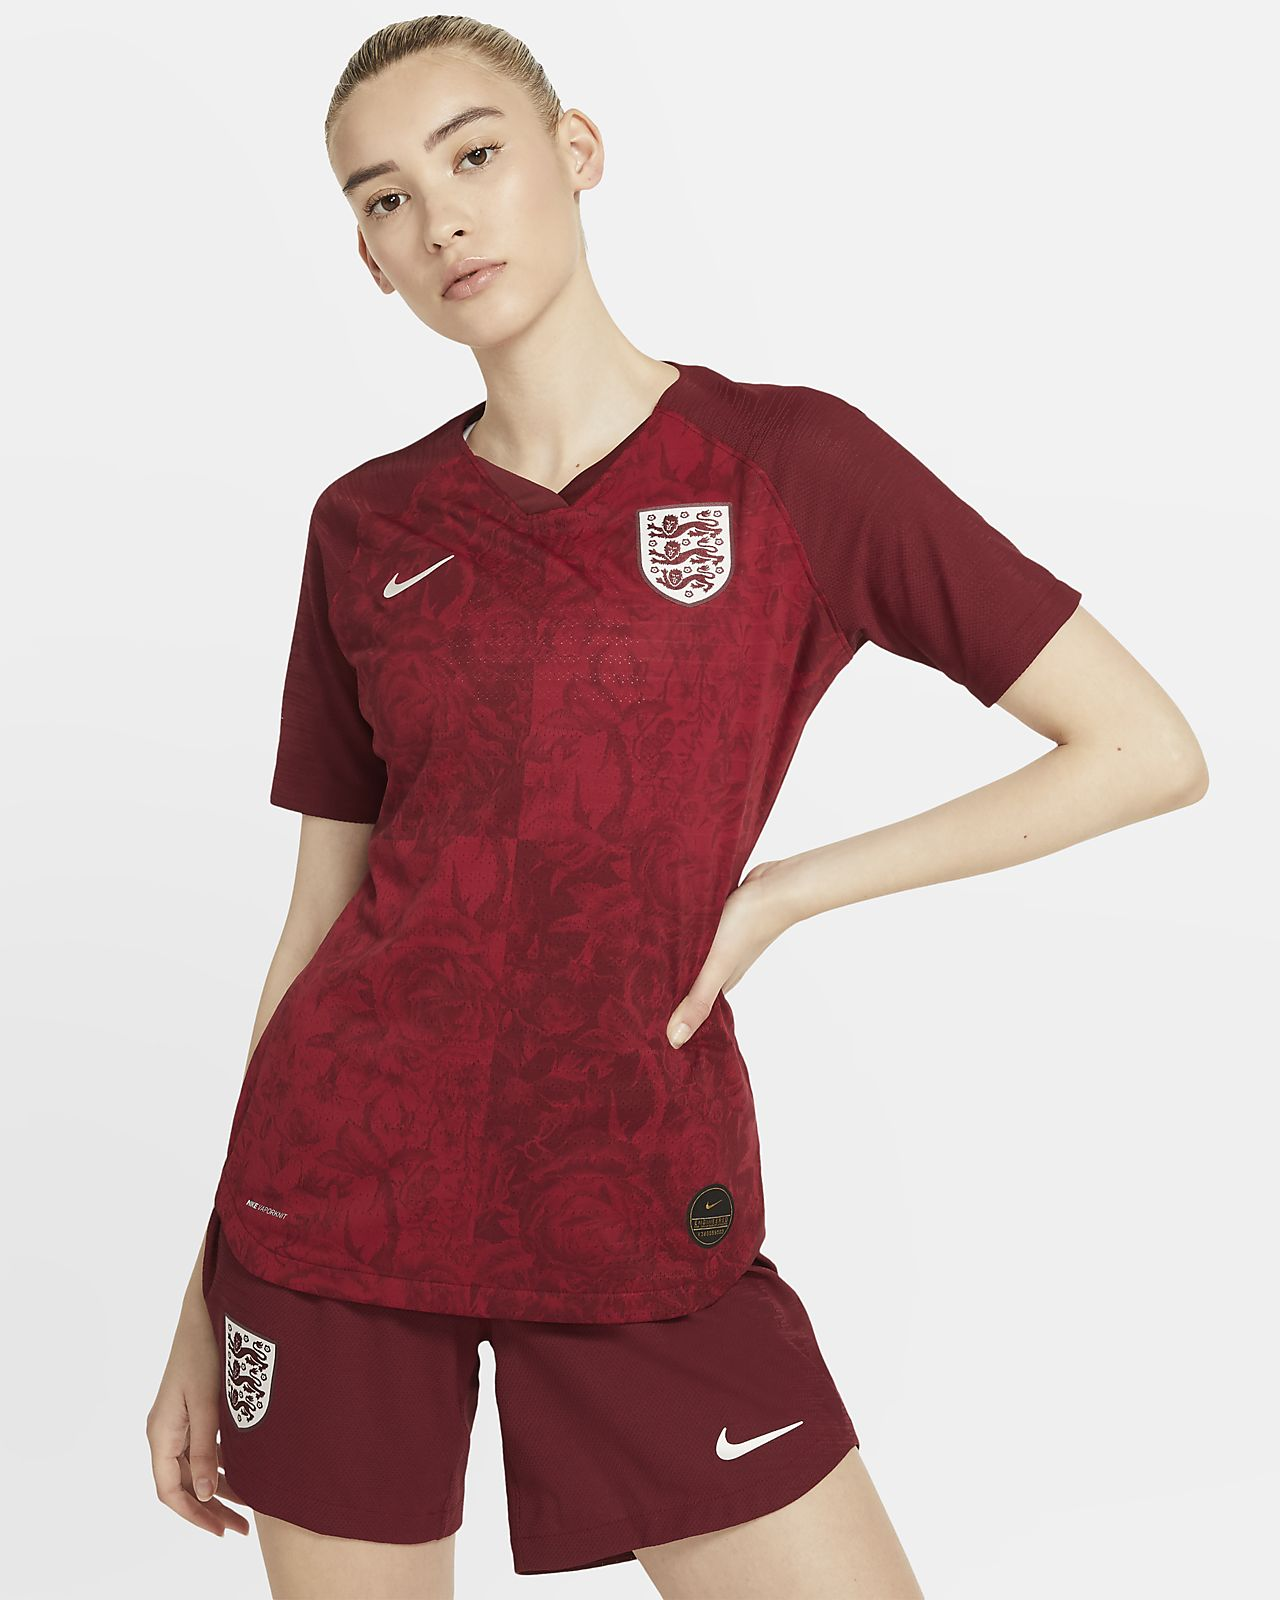 218ee0cb3 England 2019 Vapor Match Away Women's Football Shirt. Nike.com ZA